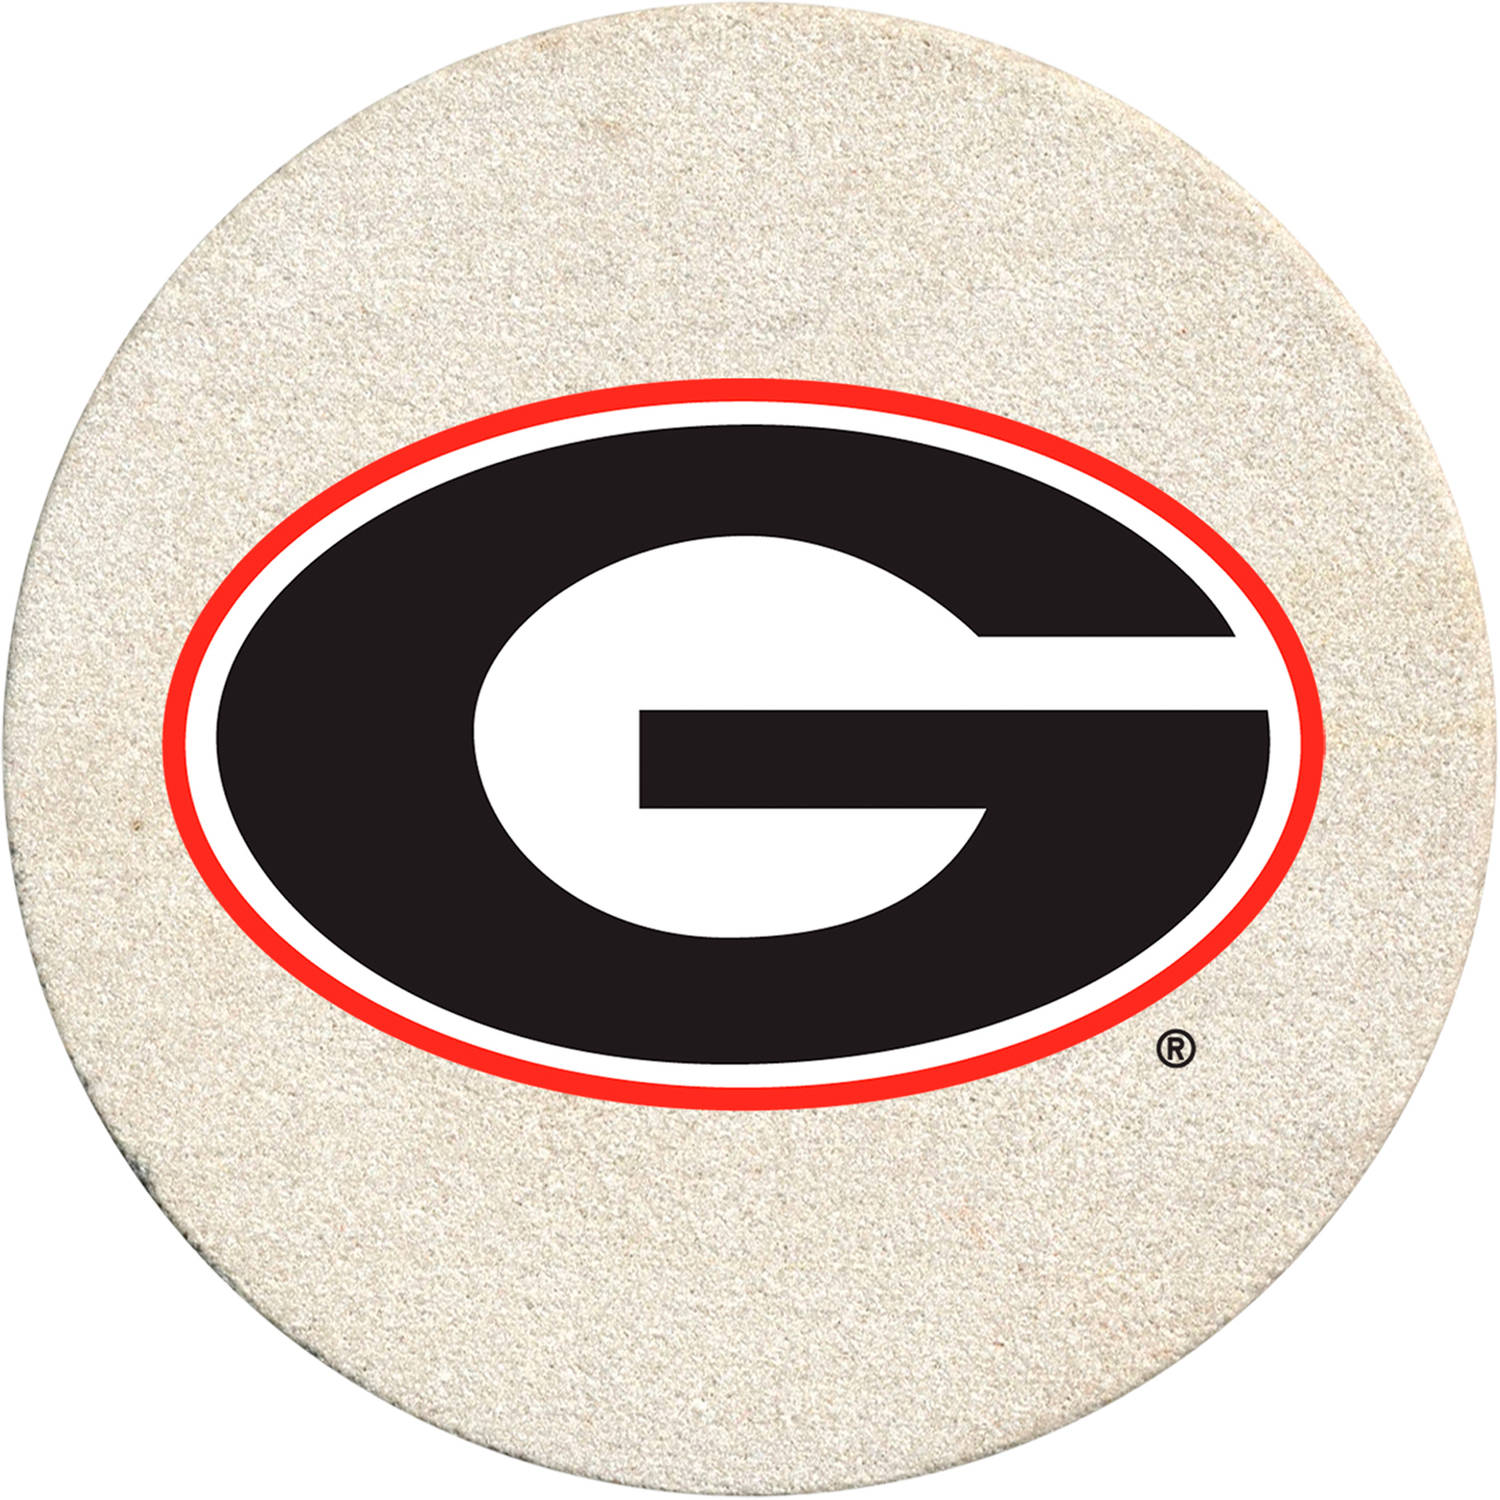 Thirstystone Drink Coaster Set, University of Georgia